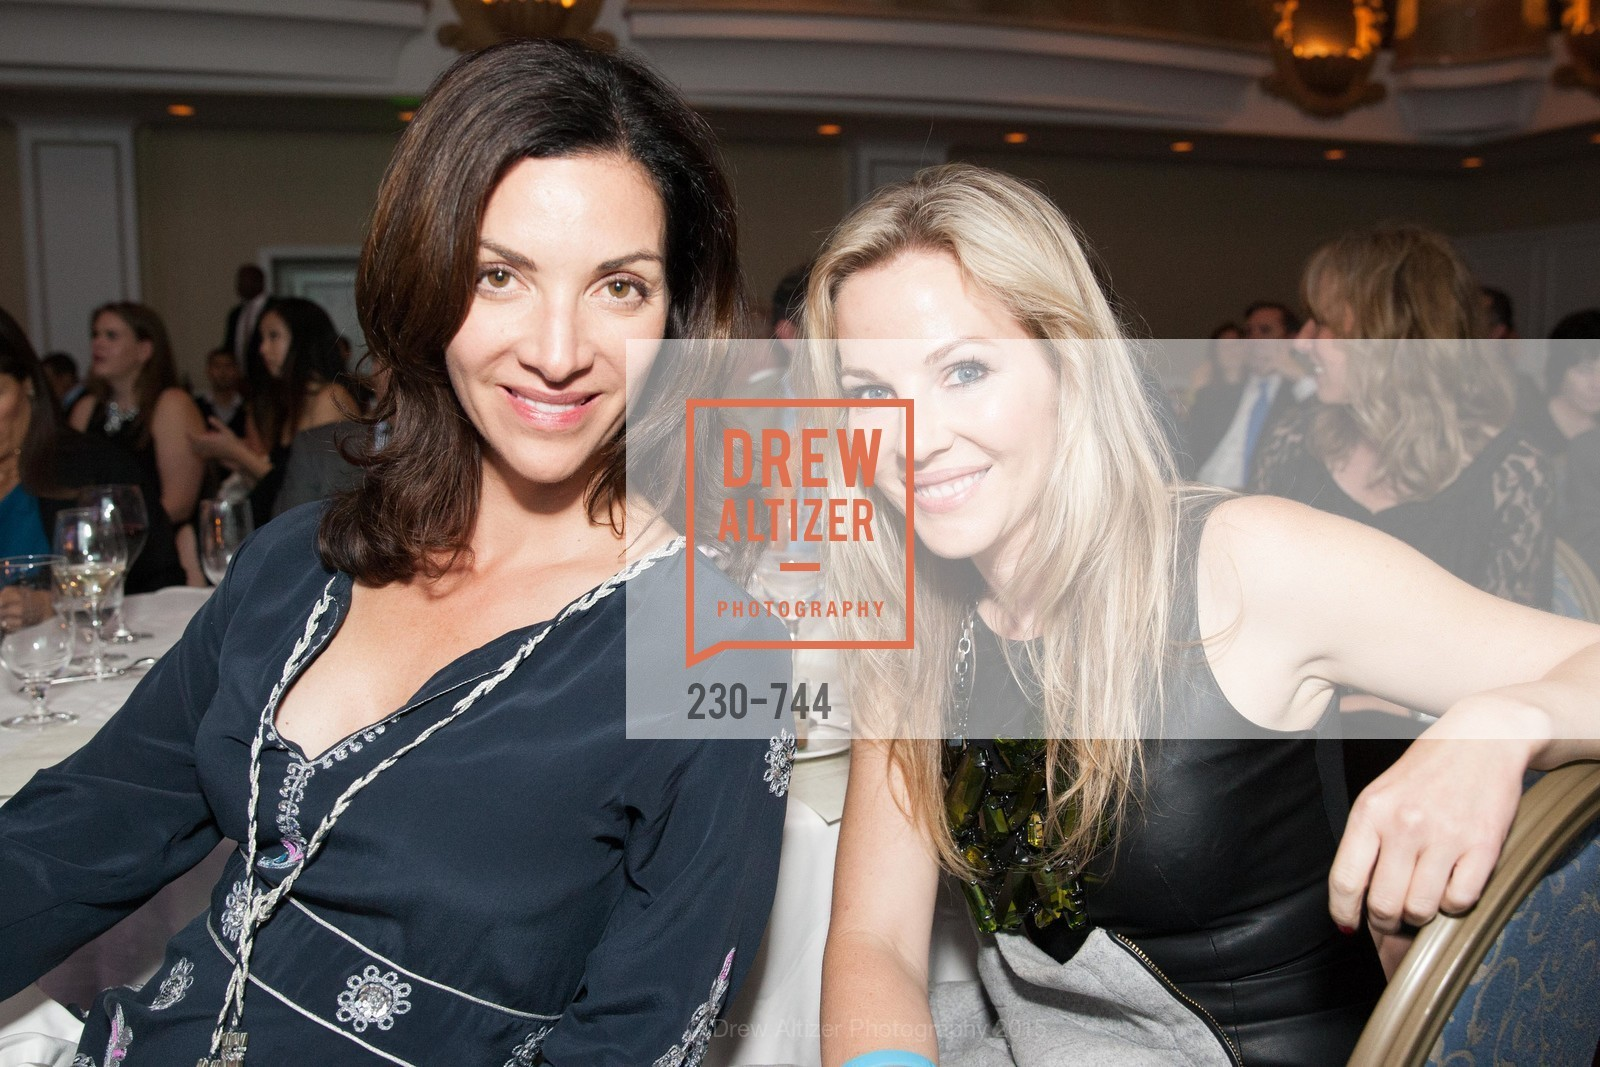 Terri Moreno, Sarah Collins, Celebration of Launch of SHYP in Los Angeles, US, May 21st, 2015,Drew Altizer, Drew Altizer Photography, full-service event agency, private events, San Francisco photographer, photographer California